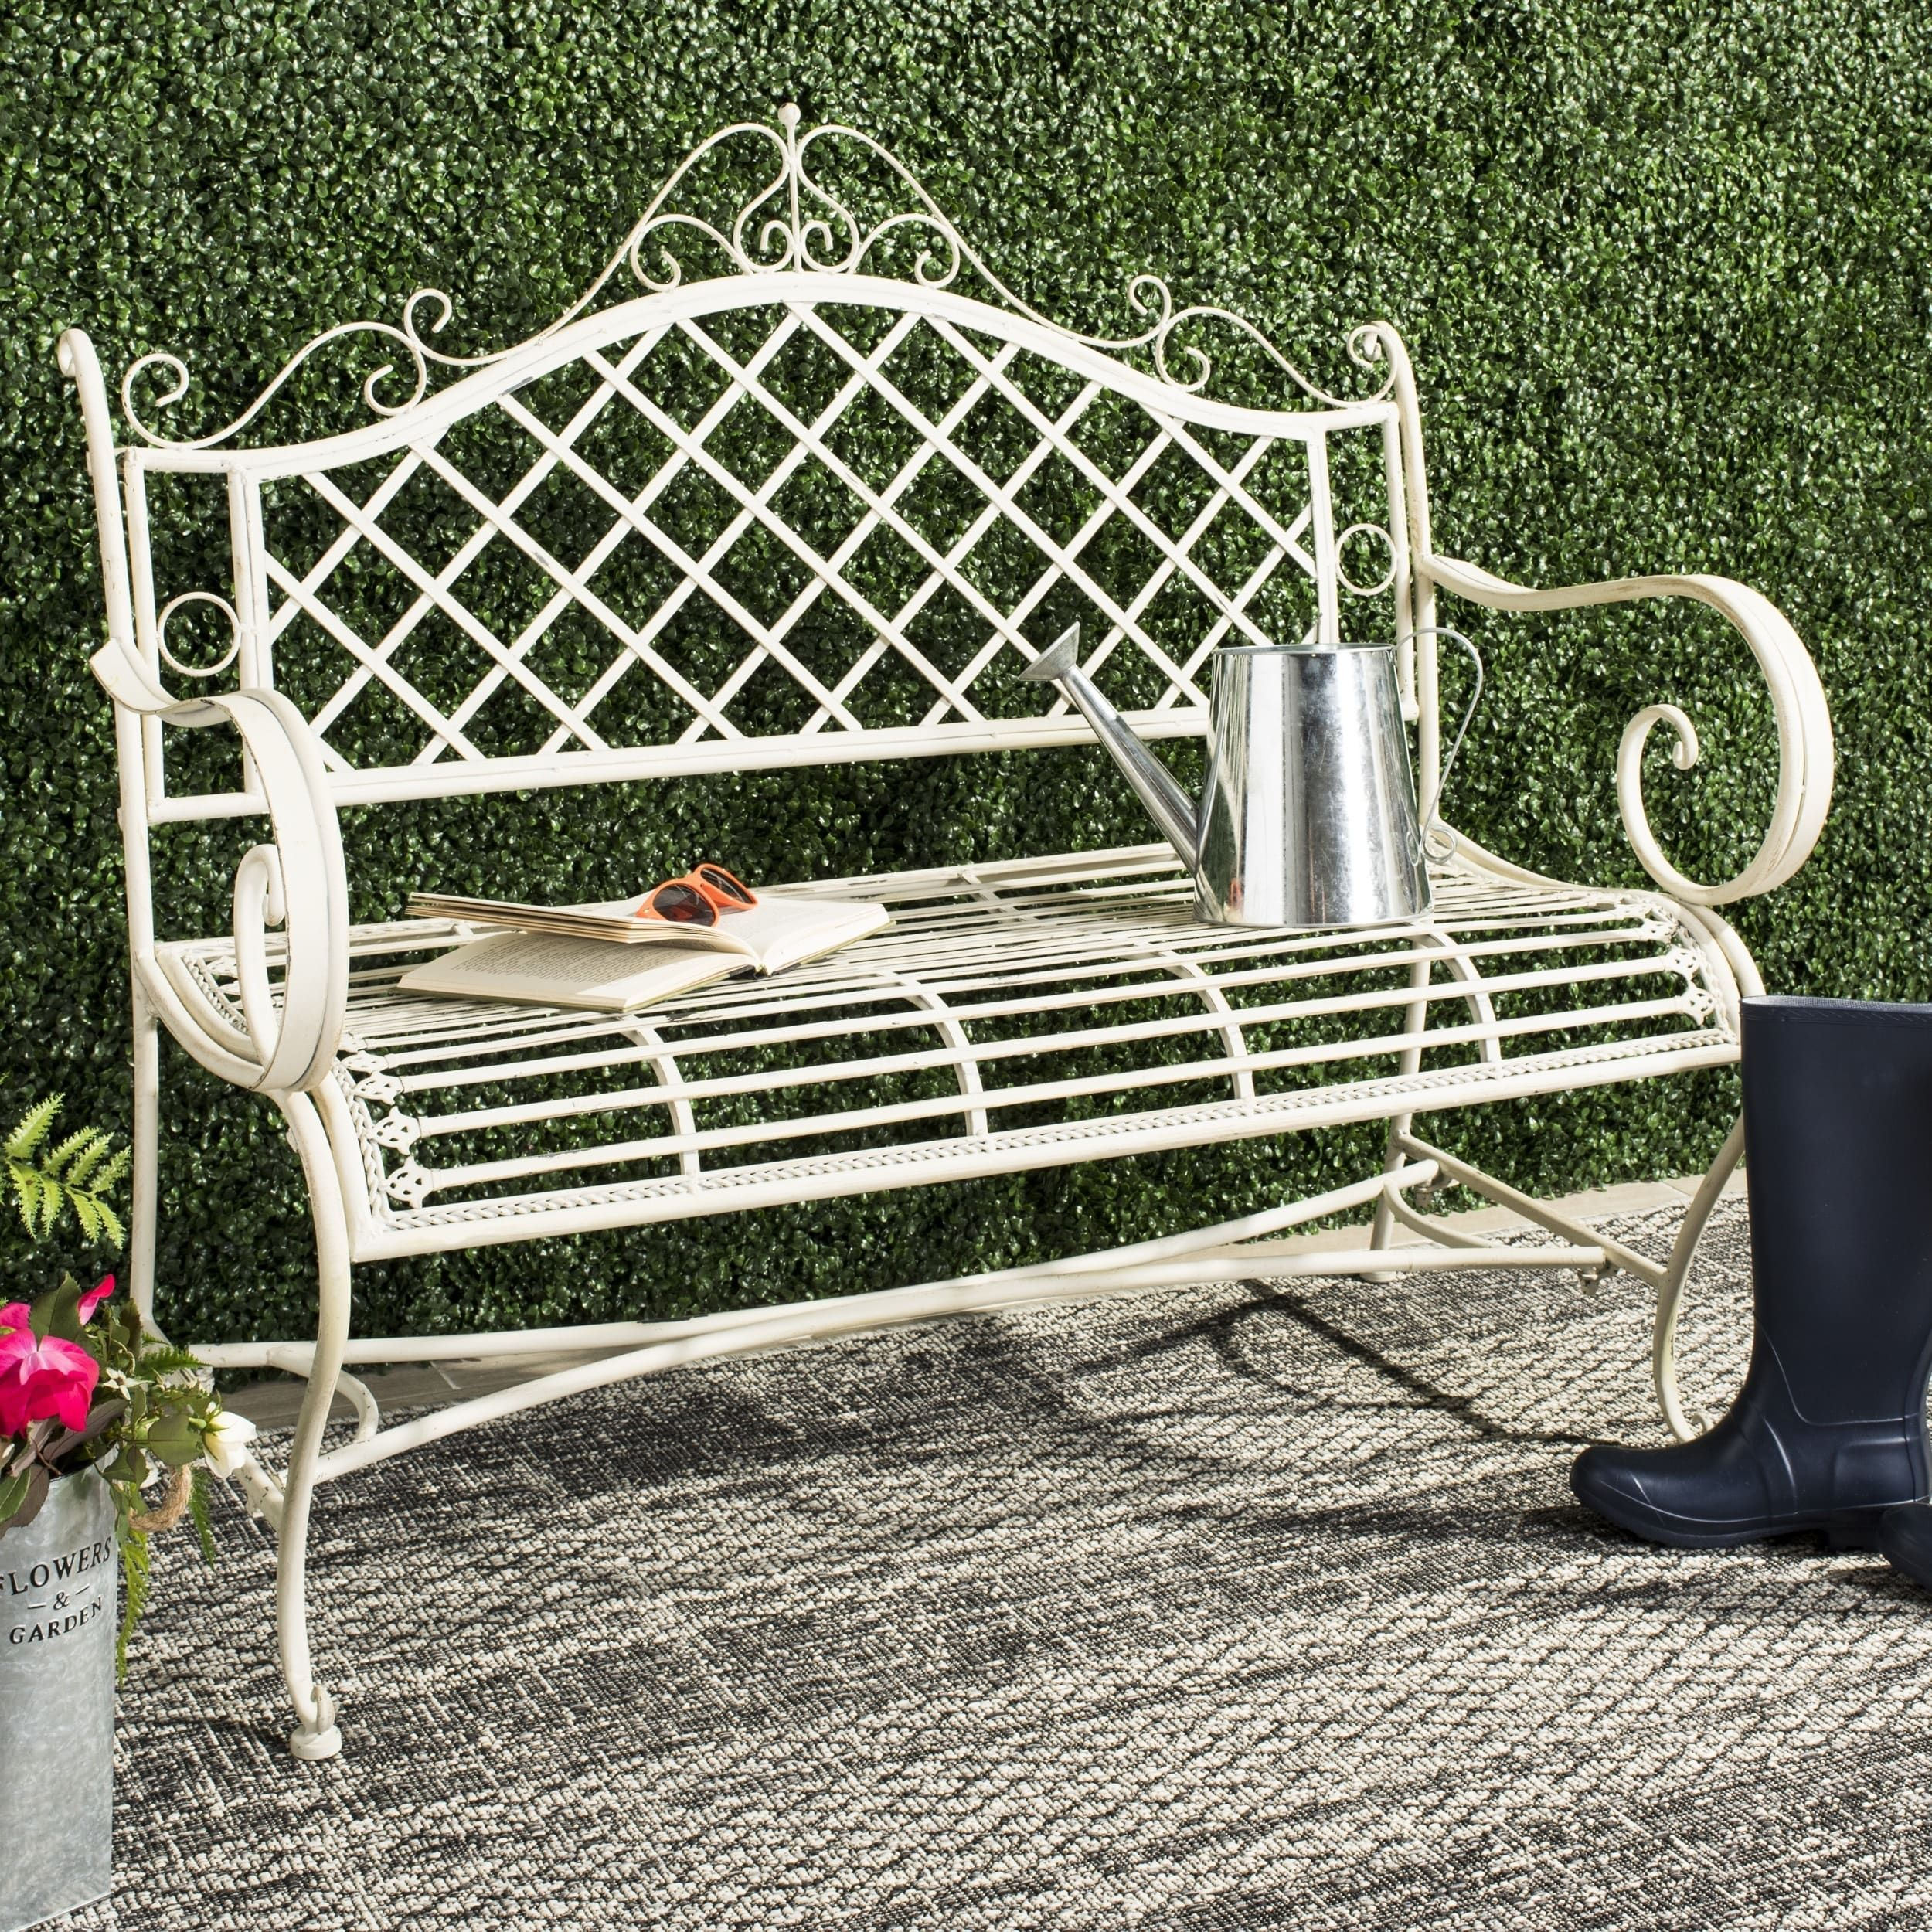 Safavieh Outdoor Living Abner White Wrought Iron Garden Bench  (45.75 Inches) (PAT5017A